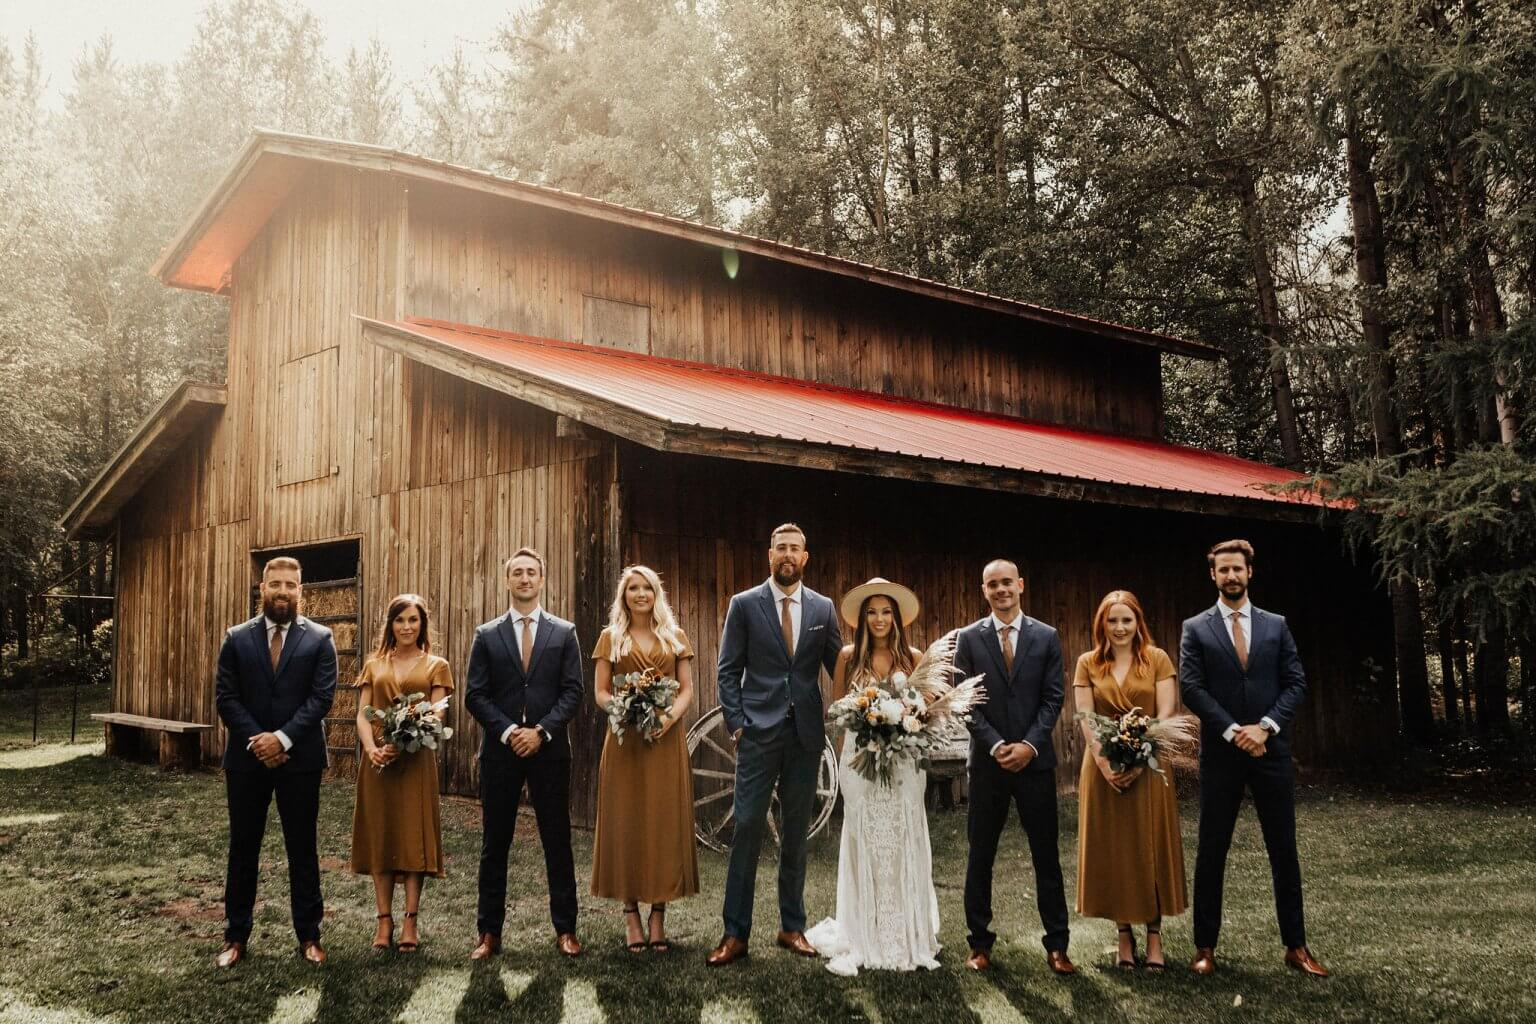 Wedding Party standing in front of a Red Barn during the fall